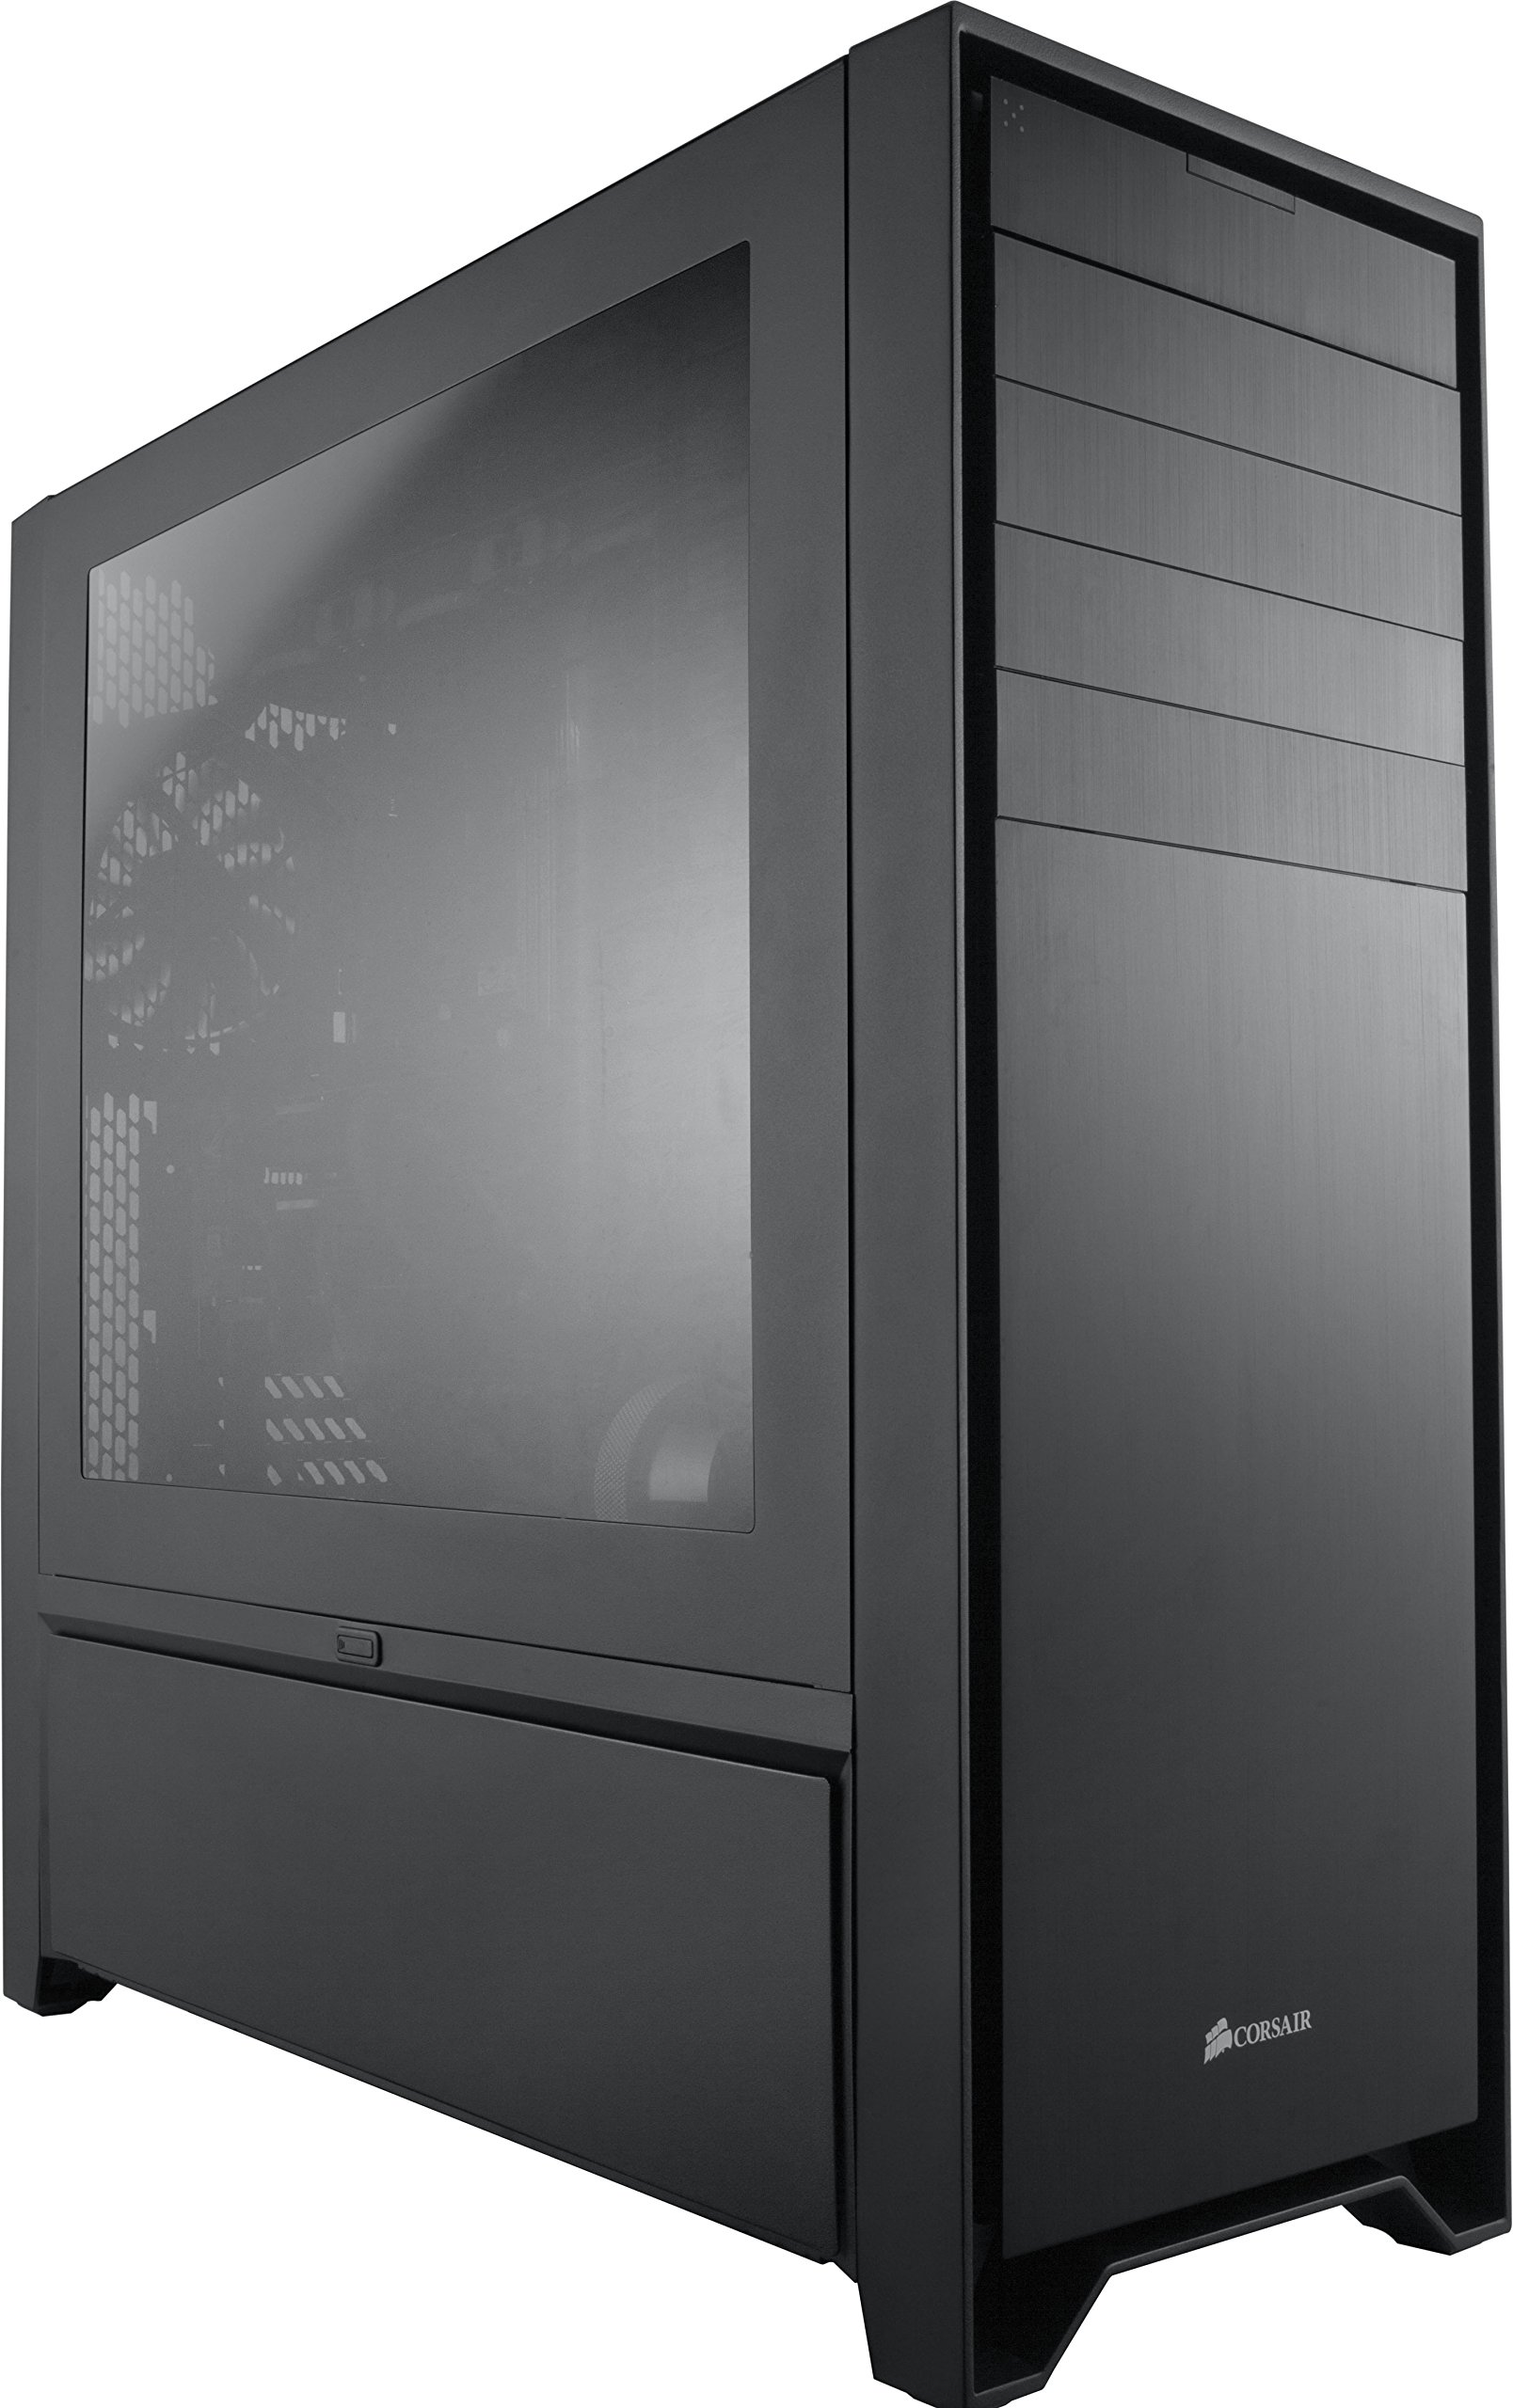 Corsair Obsidian 900D CC-9011022-WW System Cabinet Tower (Black) by Corsair